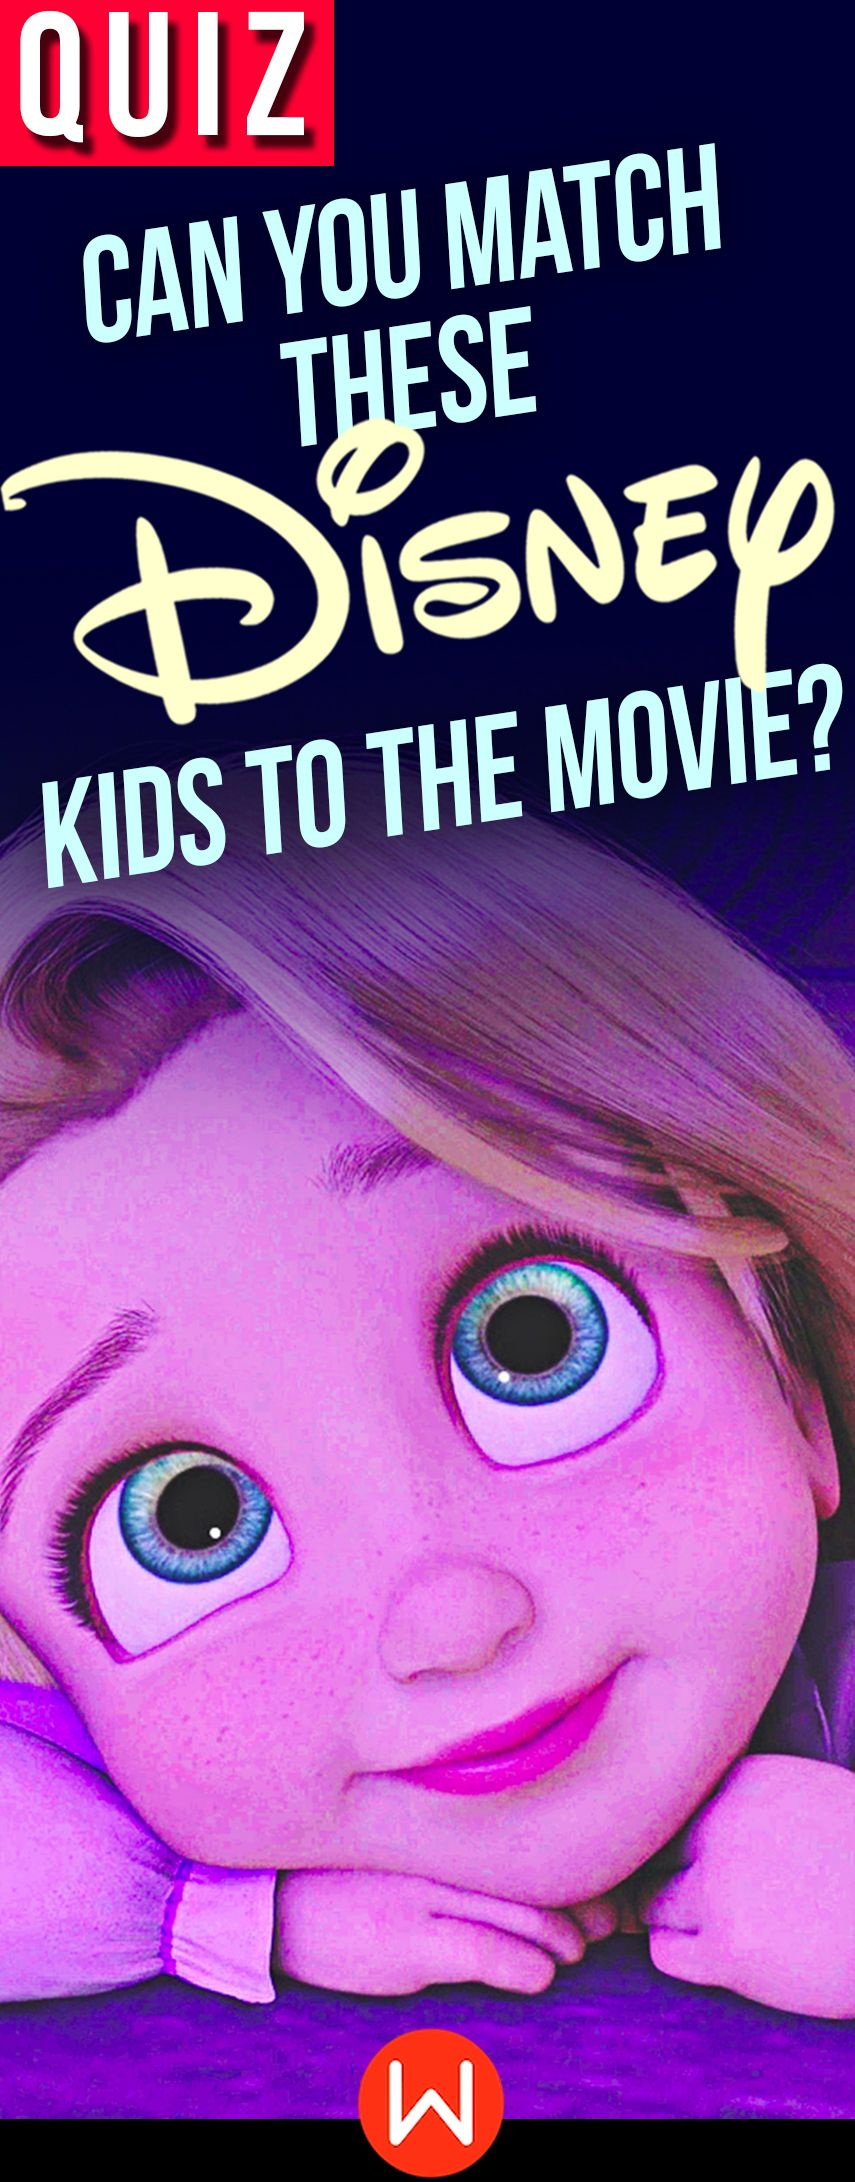 What movies do you know for kids? And what are your favorite 68